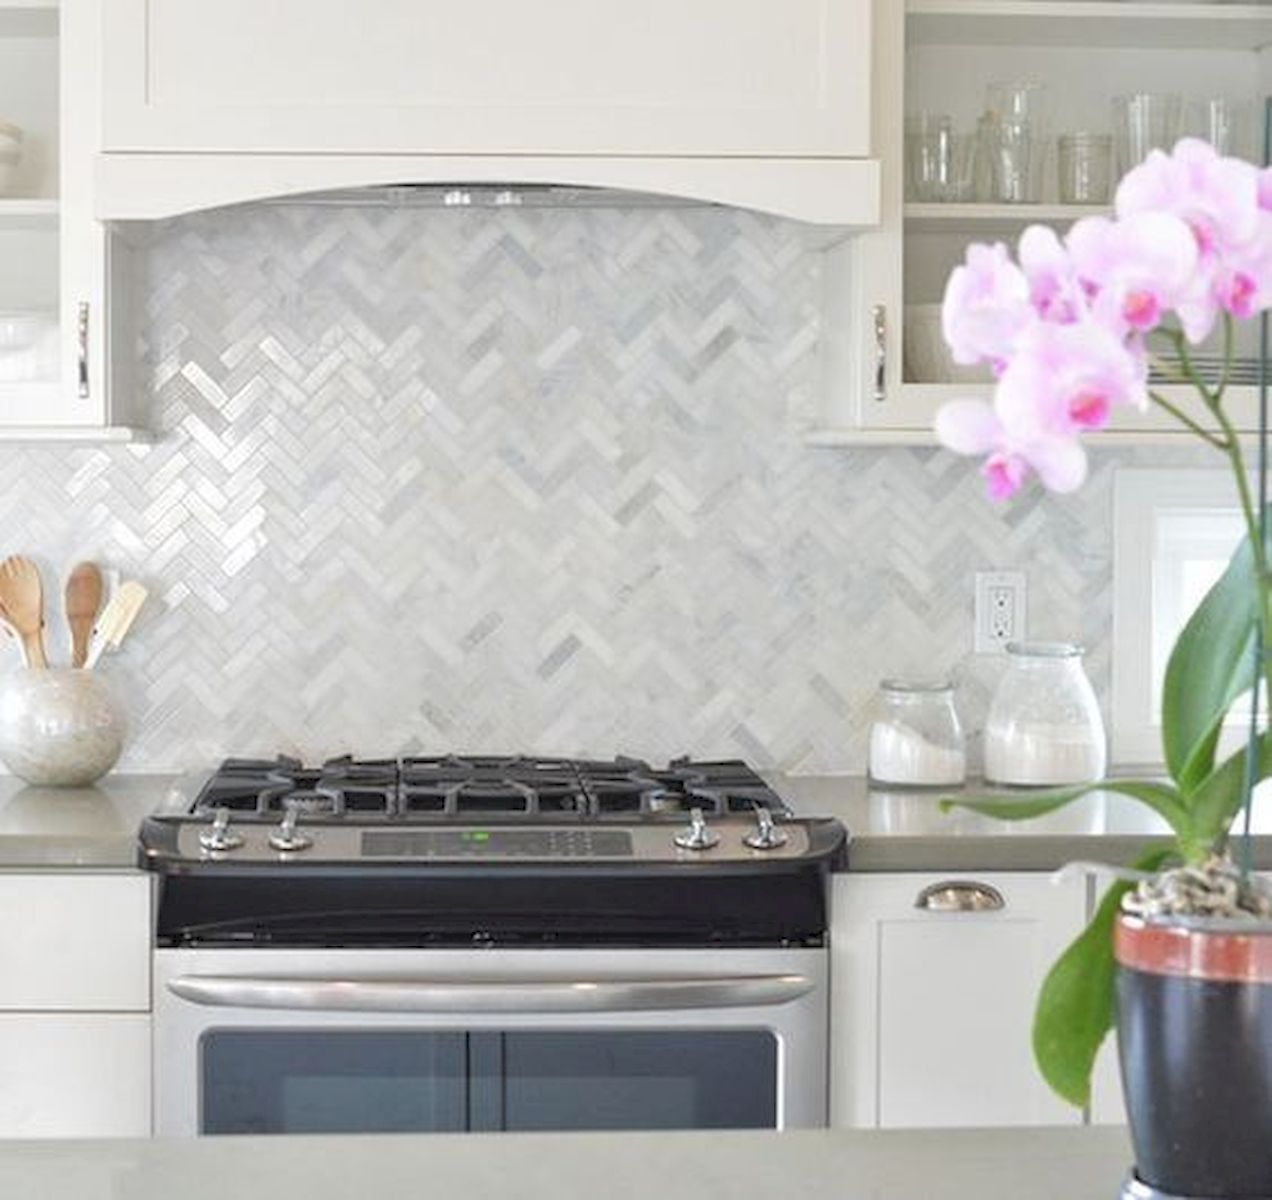 25 Fabulous Quartz Backsplash Kitchen Ideas (1)